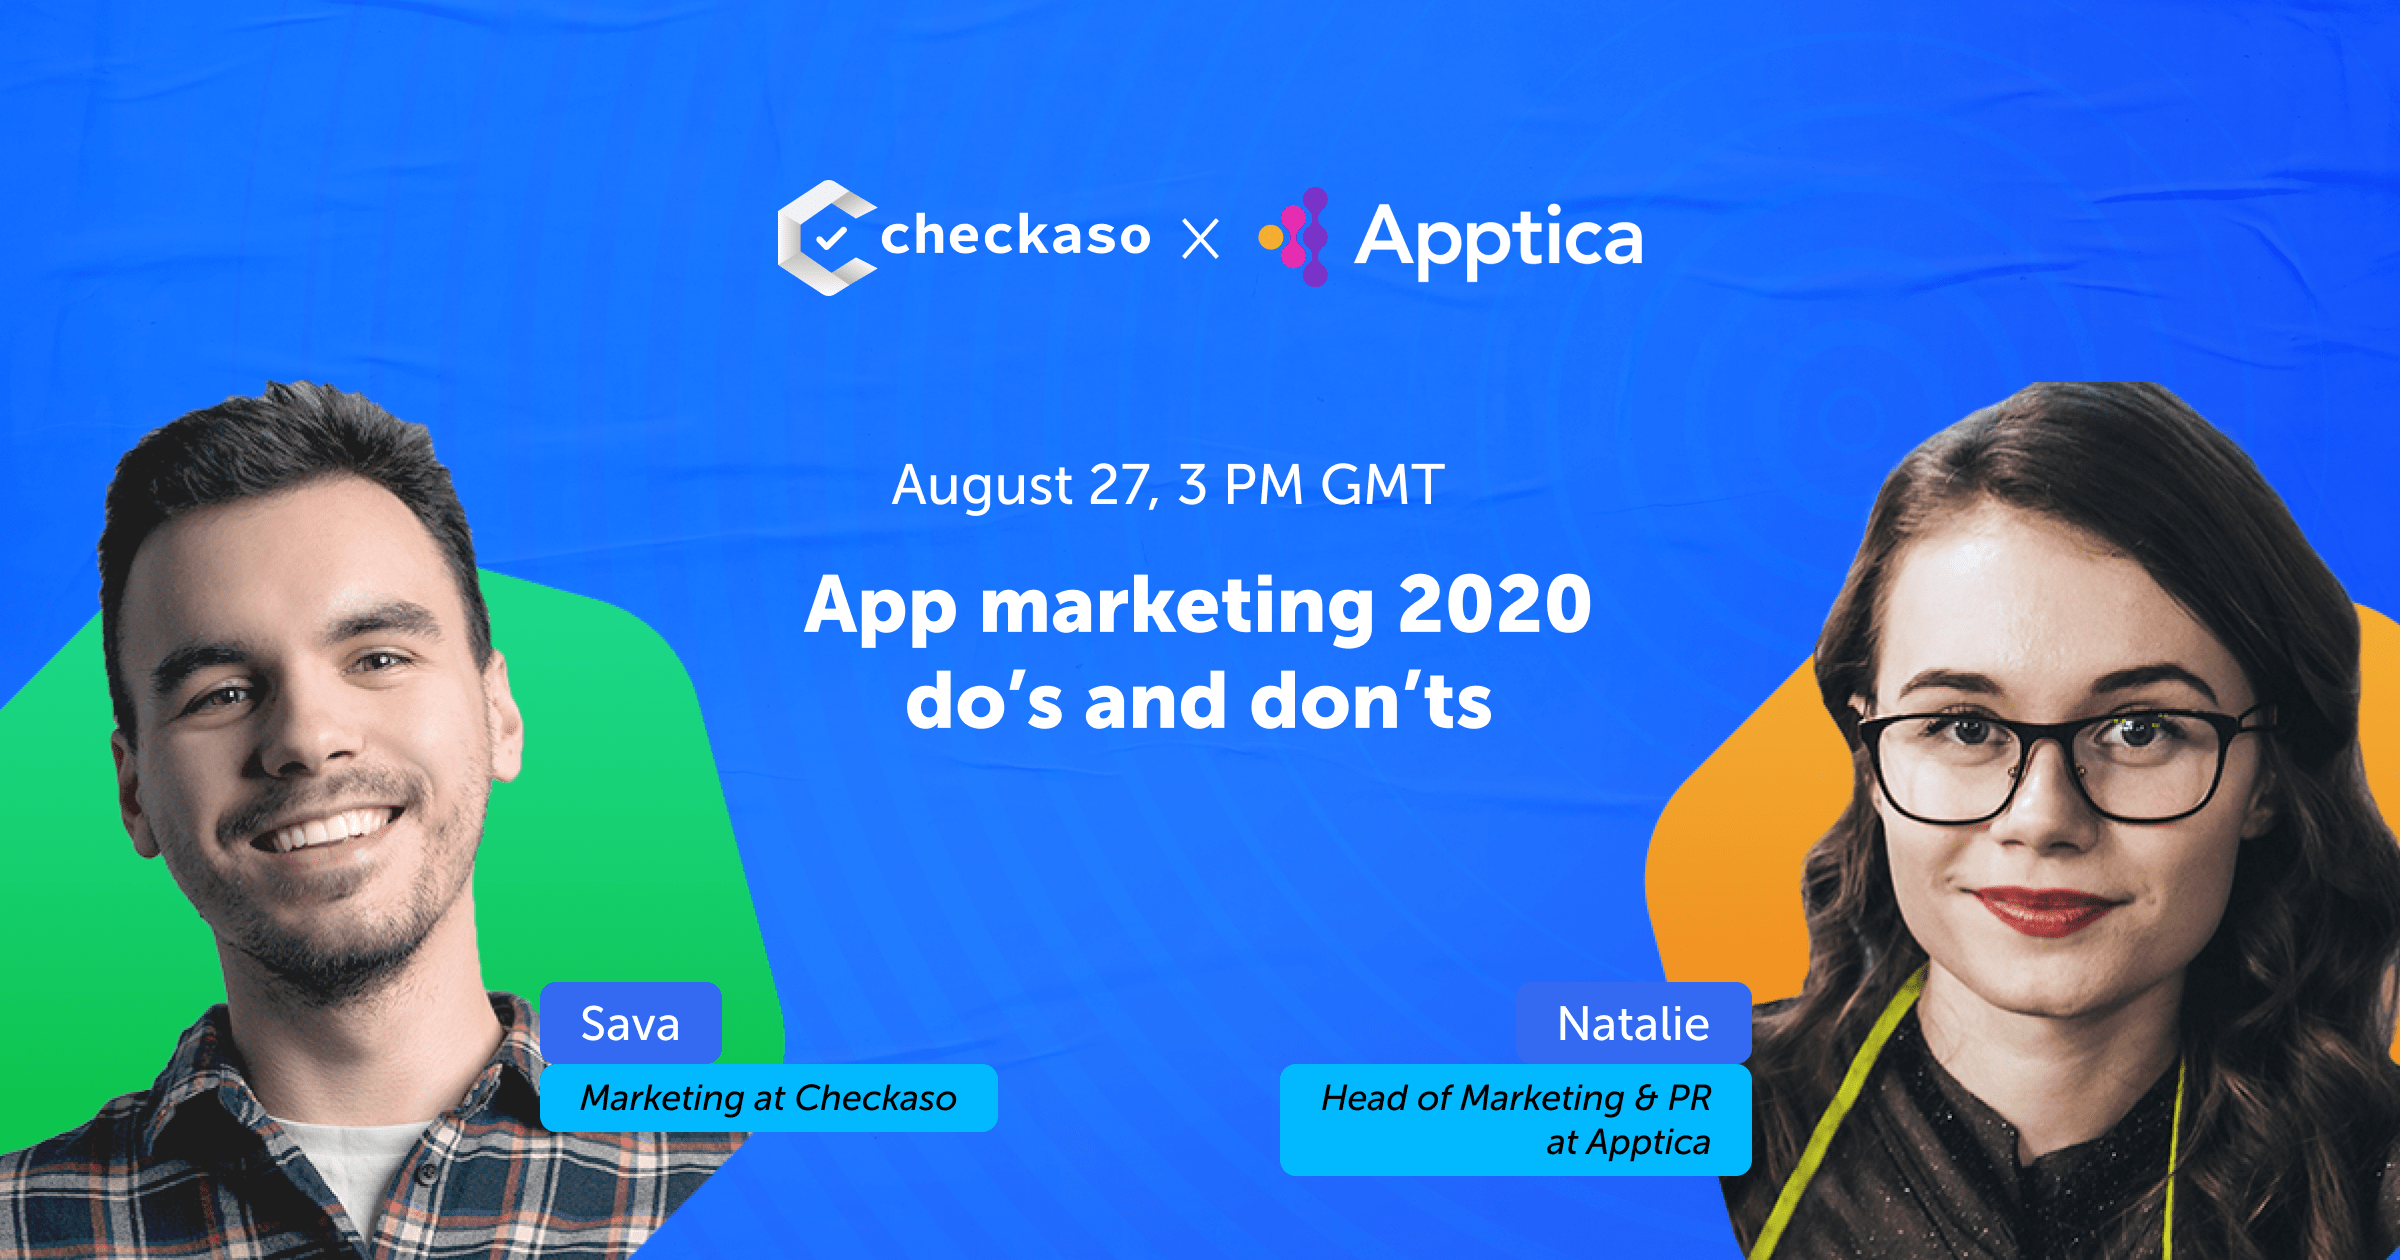 App marketing - do's and don'ts in 2020